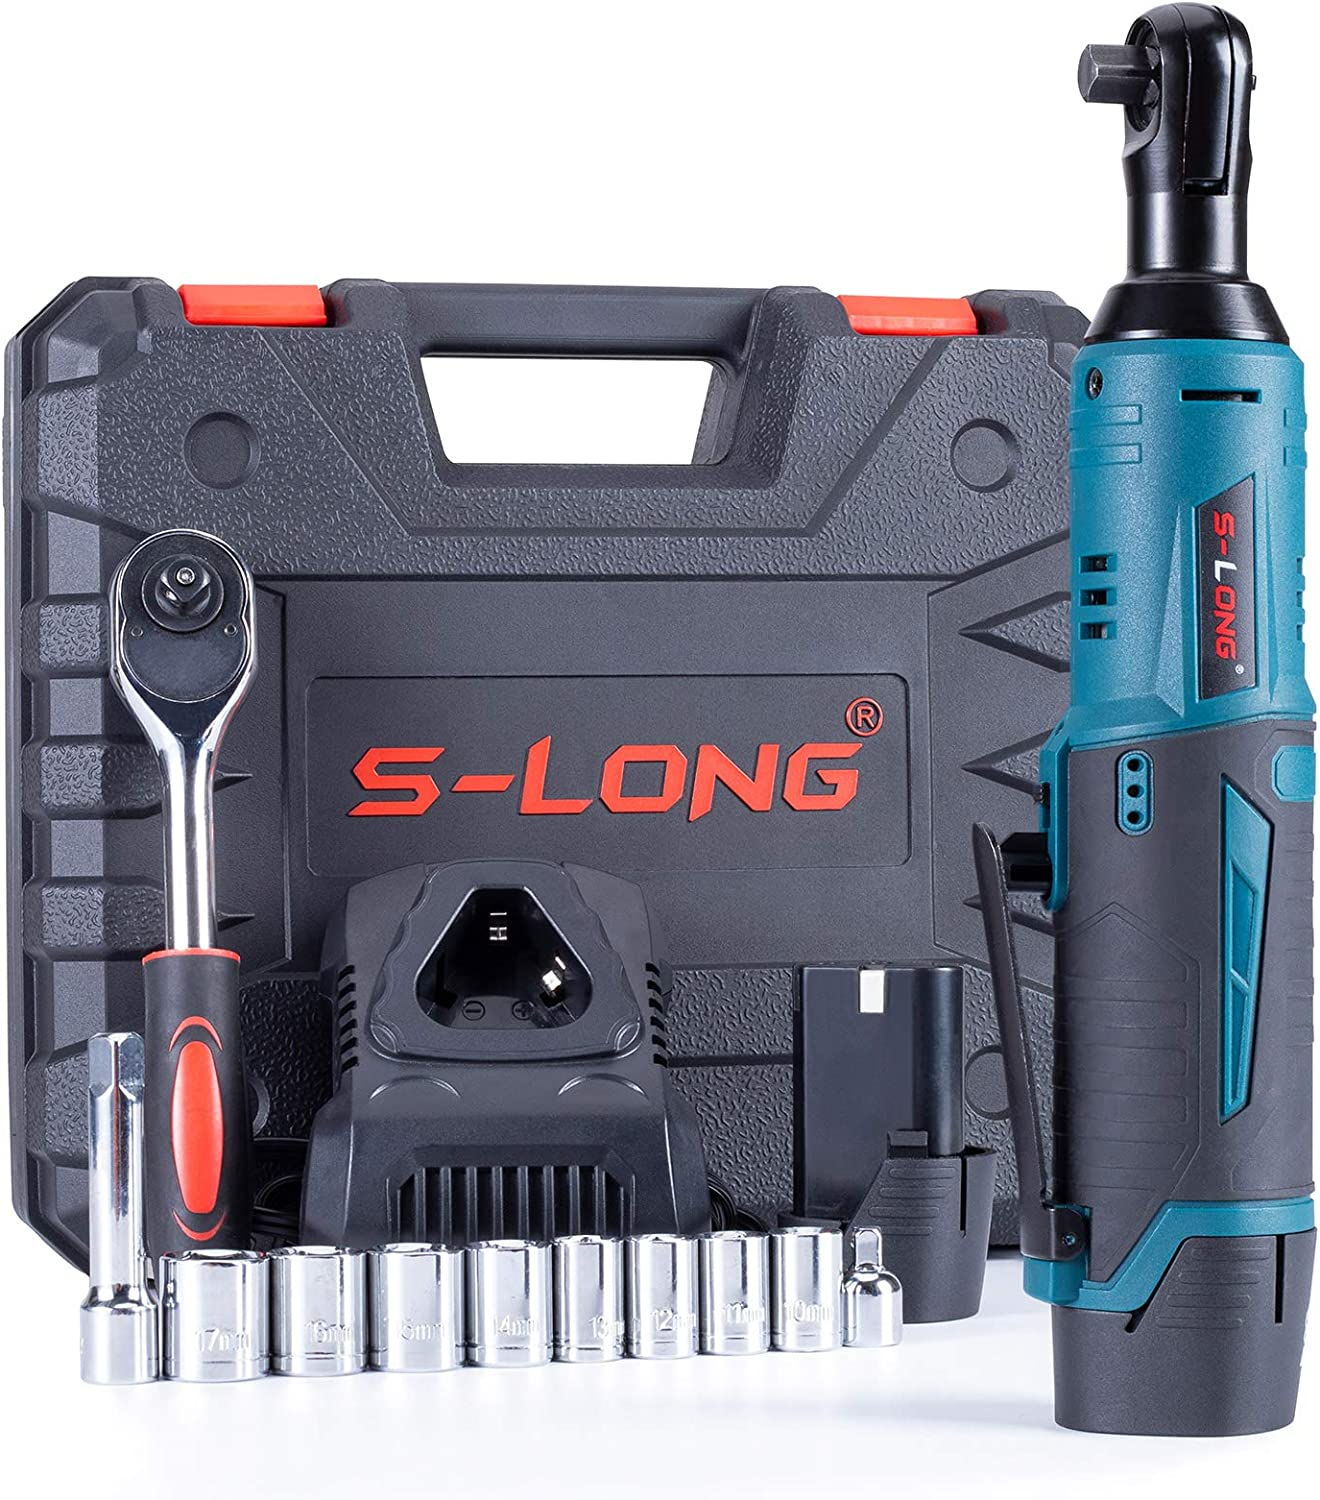 """S-LONG Cordless Electric Ratchet Wrench Set, 3/8"""" 400 RPM 12V Power Ratchet Driver with 10 Sockets, 2000mAh Lithium-Ion Battery and 60-Min Fast Charge : Tools & Home Improvement"""